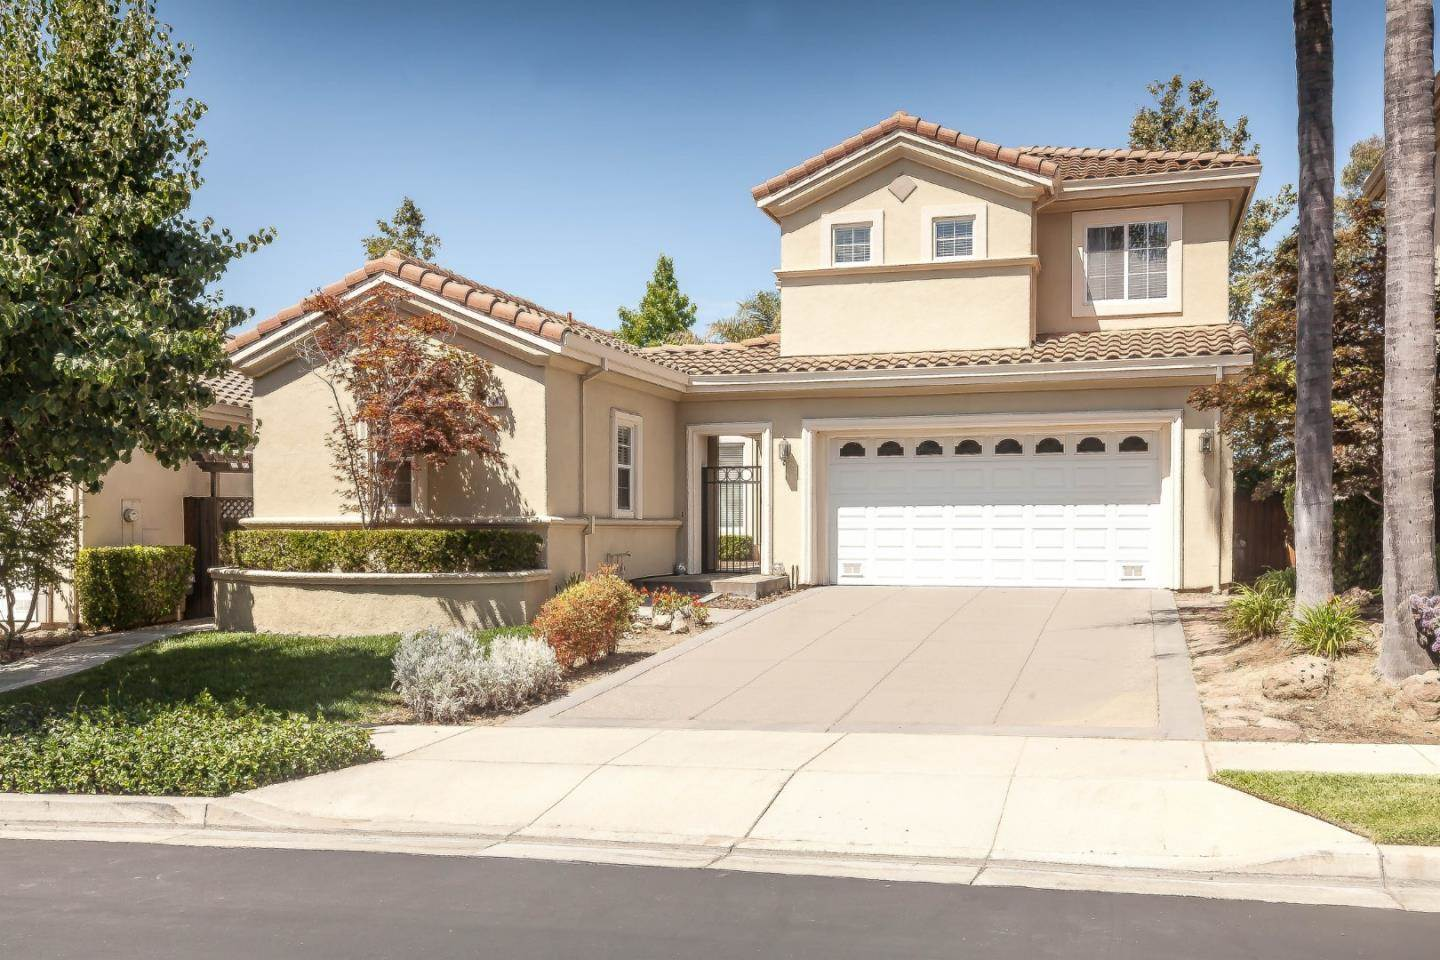 5847 Killarney CIR, Santa Teresa, California